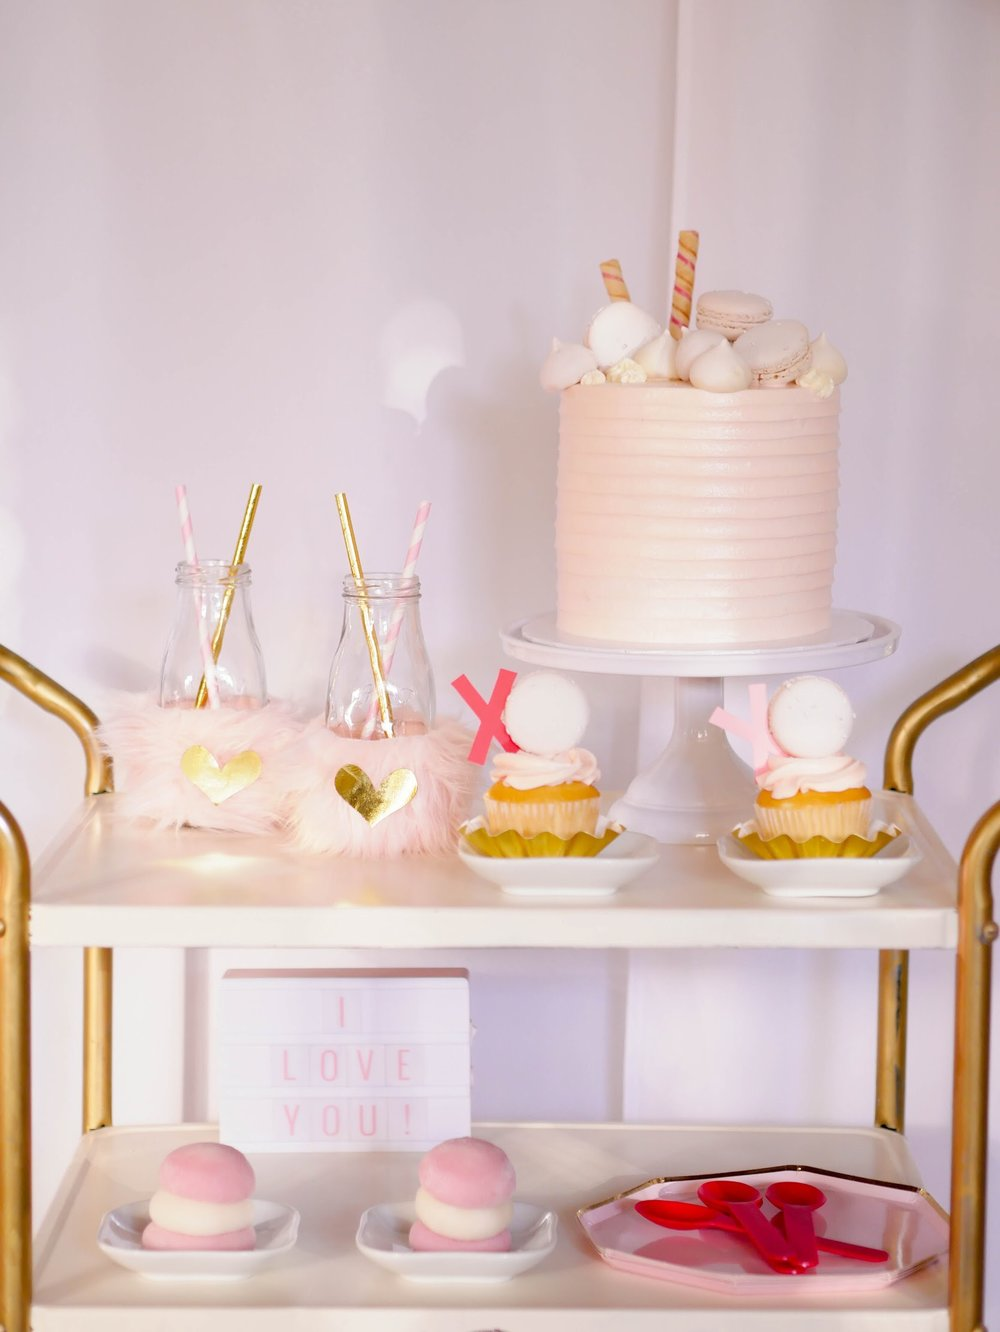 Perfectly Pink Valentine's Day dessert cart idea from Mint Event Design